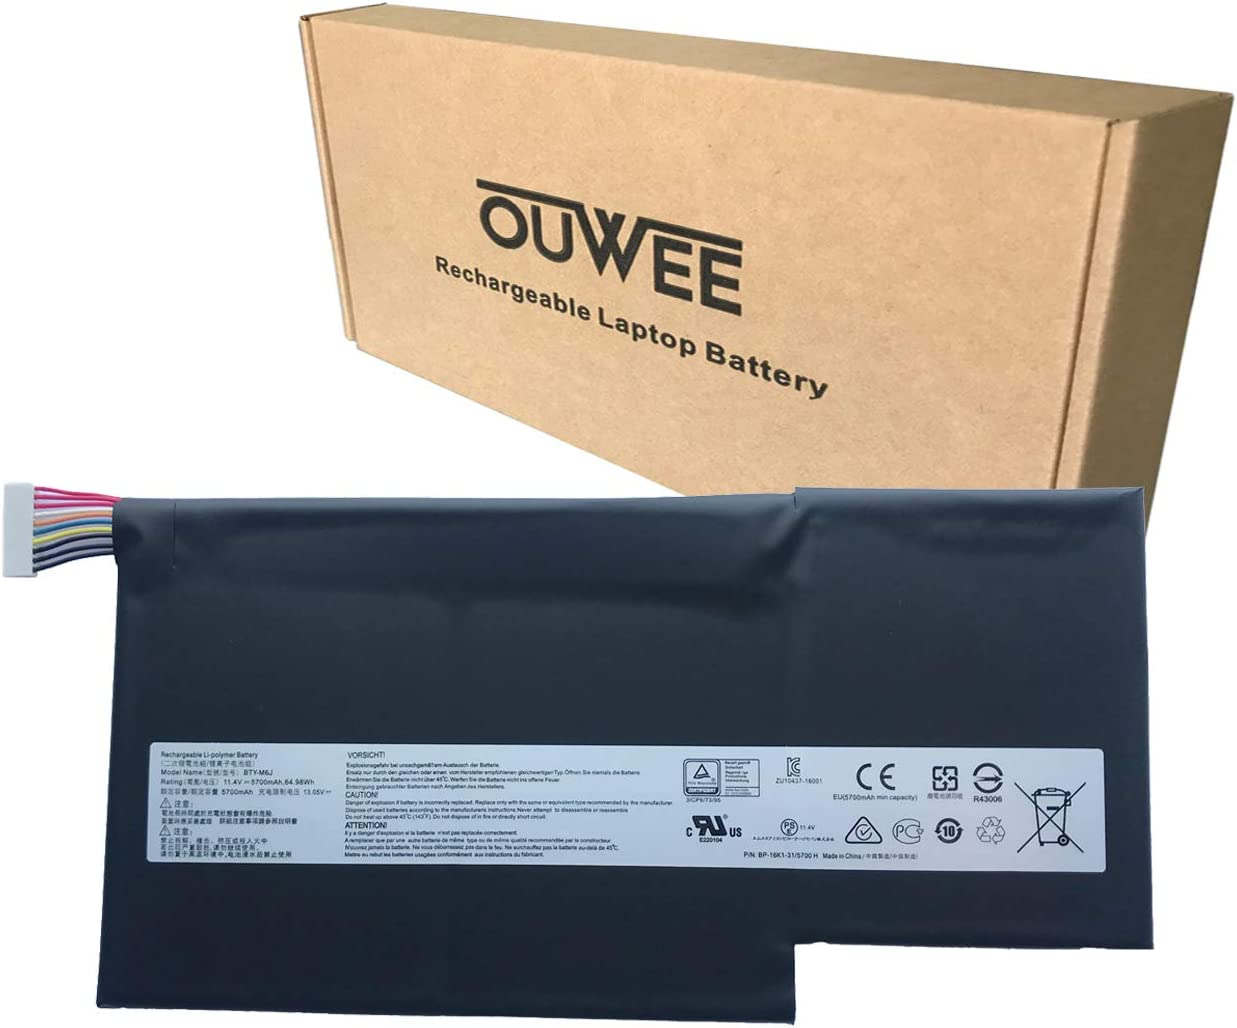 OUWEE BTY-M6J Laptop Battery Compatible with MSI GS63 7RE-009CN 018CN GS63VR 6RF-016CN 095CN 7RF-239CN 258CN GS73 7RE-004CN GS73VR 6RF-013CN 7RF-284CN Series BTY-U6J 11.4V 64.98Wh 5700mAh